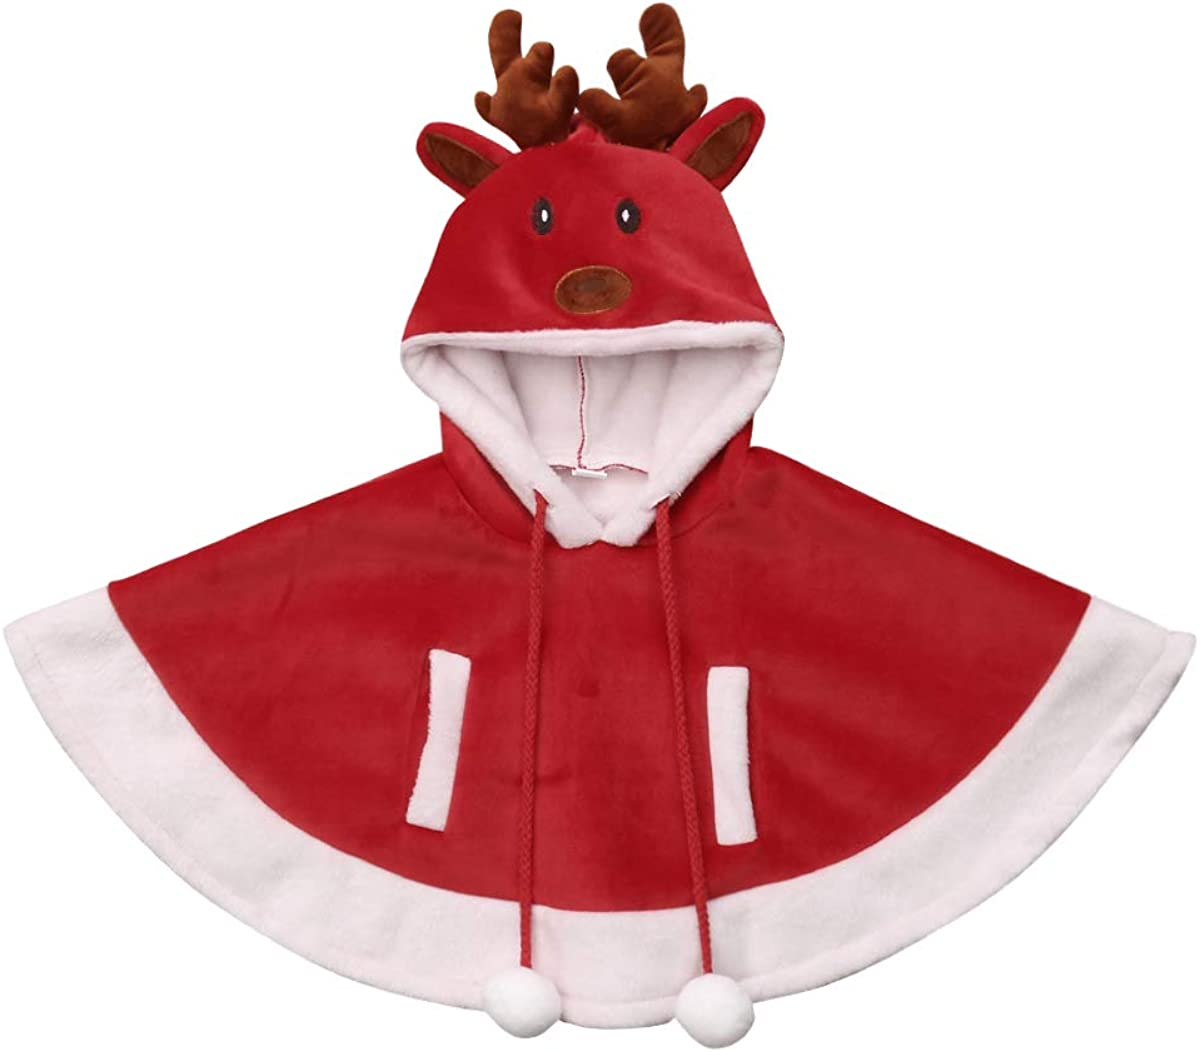 child Hooded warm fleece cape coat 2-14 years child toddler boy girl teen jr poncho carseat car seat Christmas gift unisex